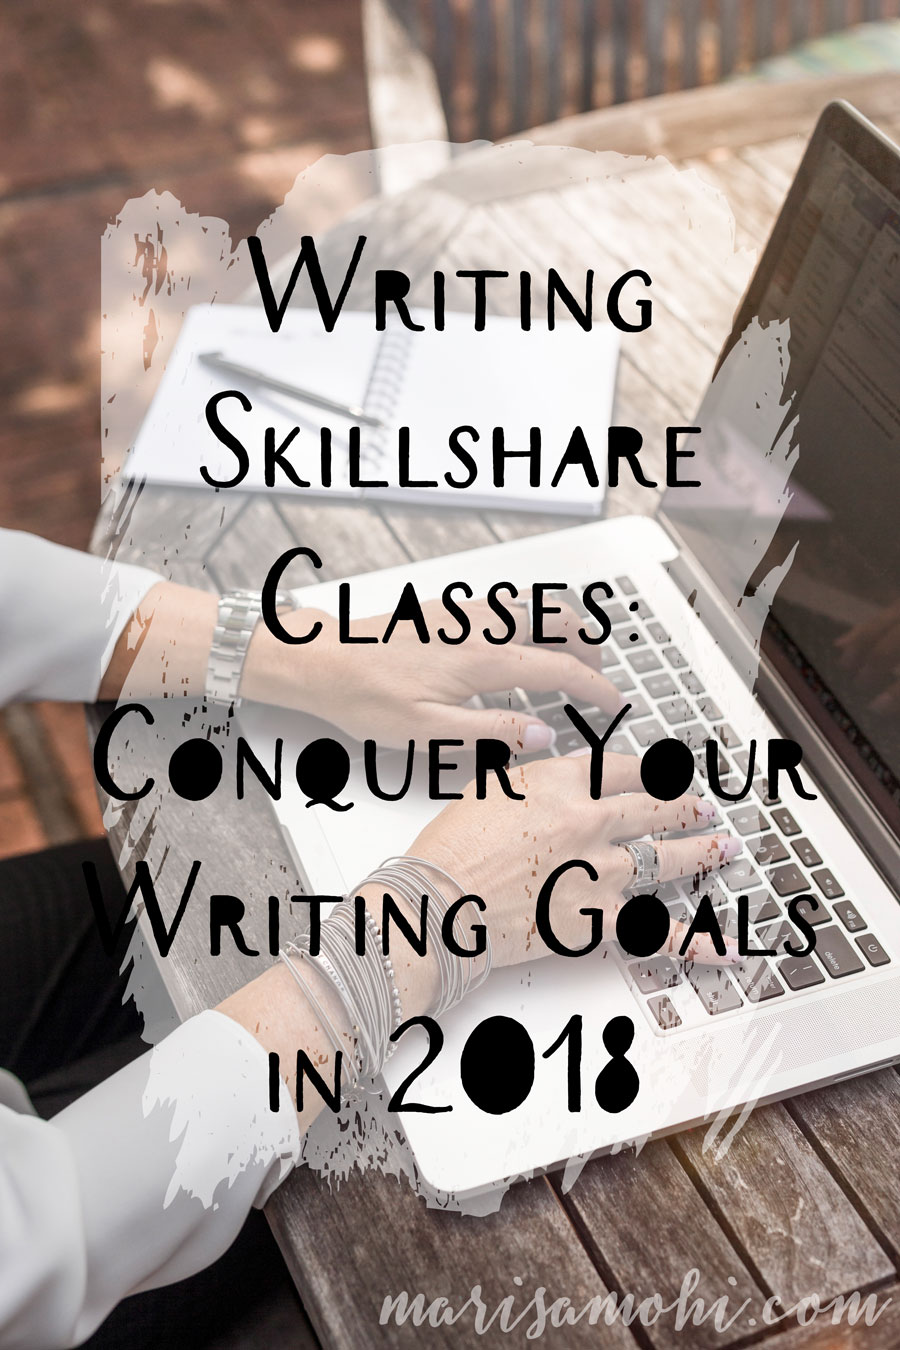 Writing Skillshare Classes: Conquer Your Writing Goals in 2018